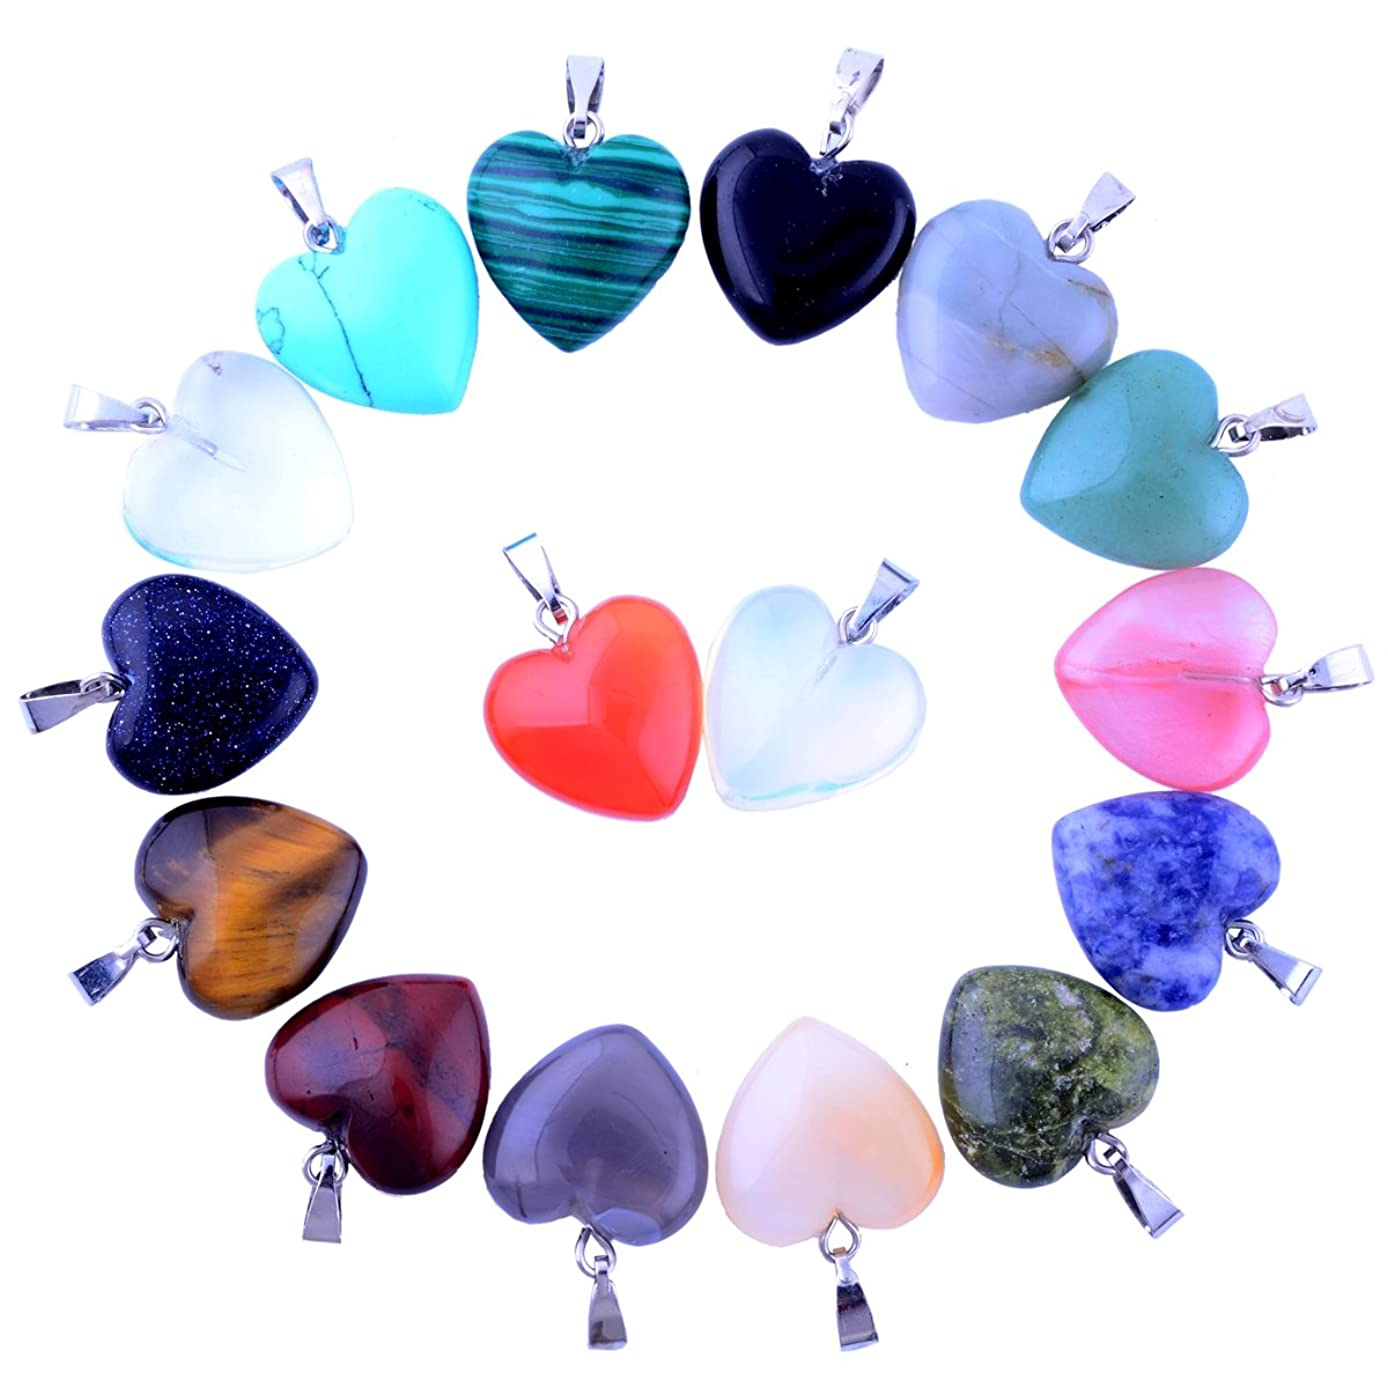 Heart Pendants 20pcs Small Love 0.63inch Charms Crystal Heading Chakra Stone Pendants for Necklace Earring Jewelry Making